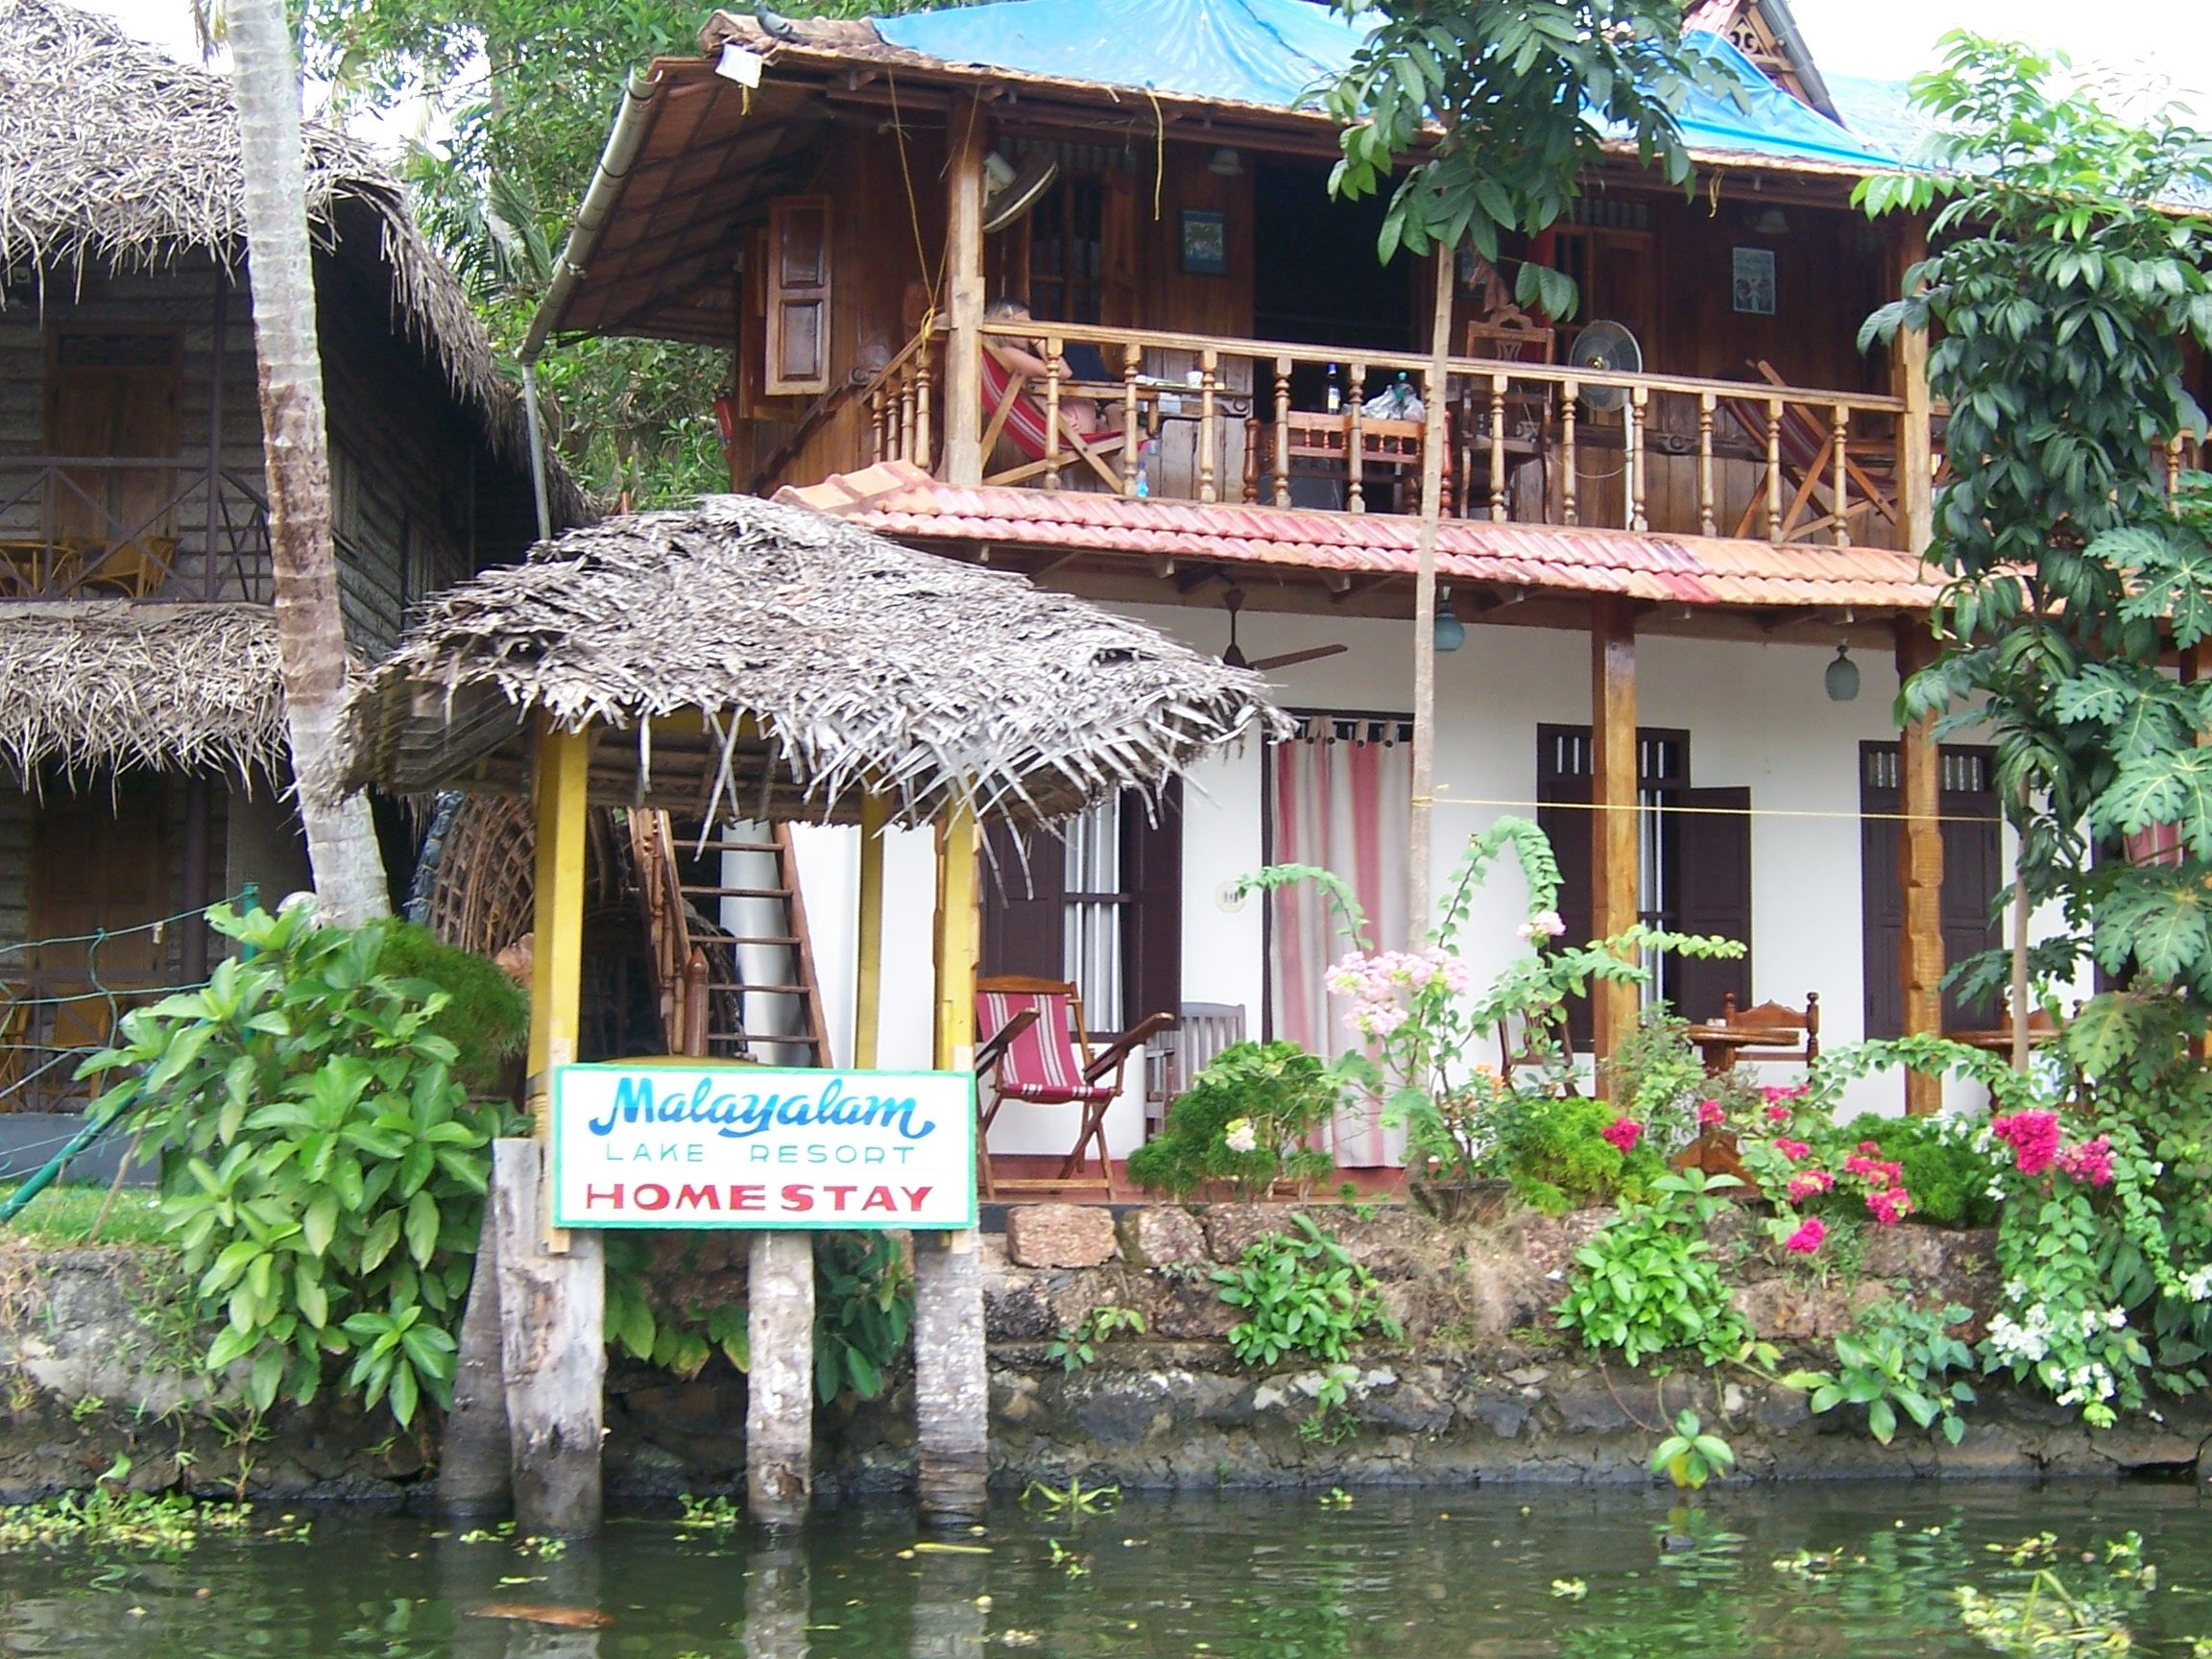 A waterside resort, Aleppuzha